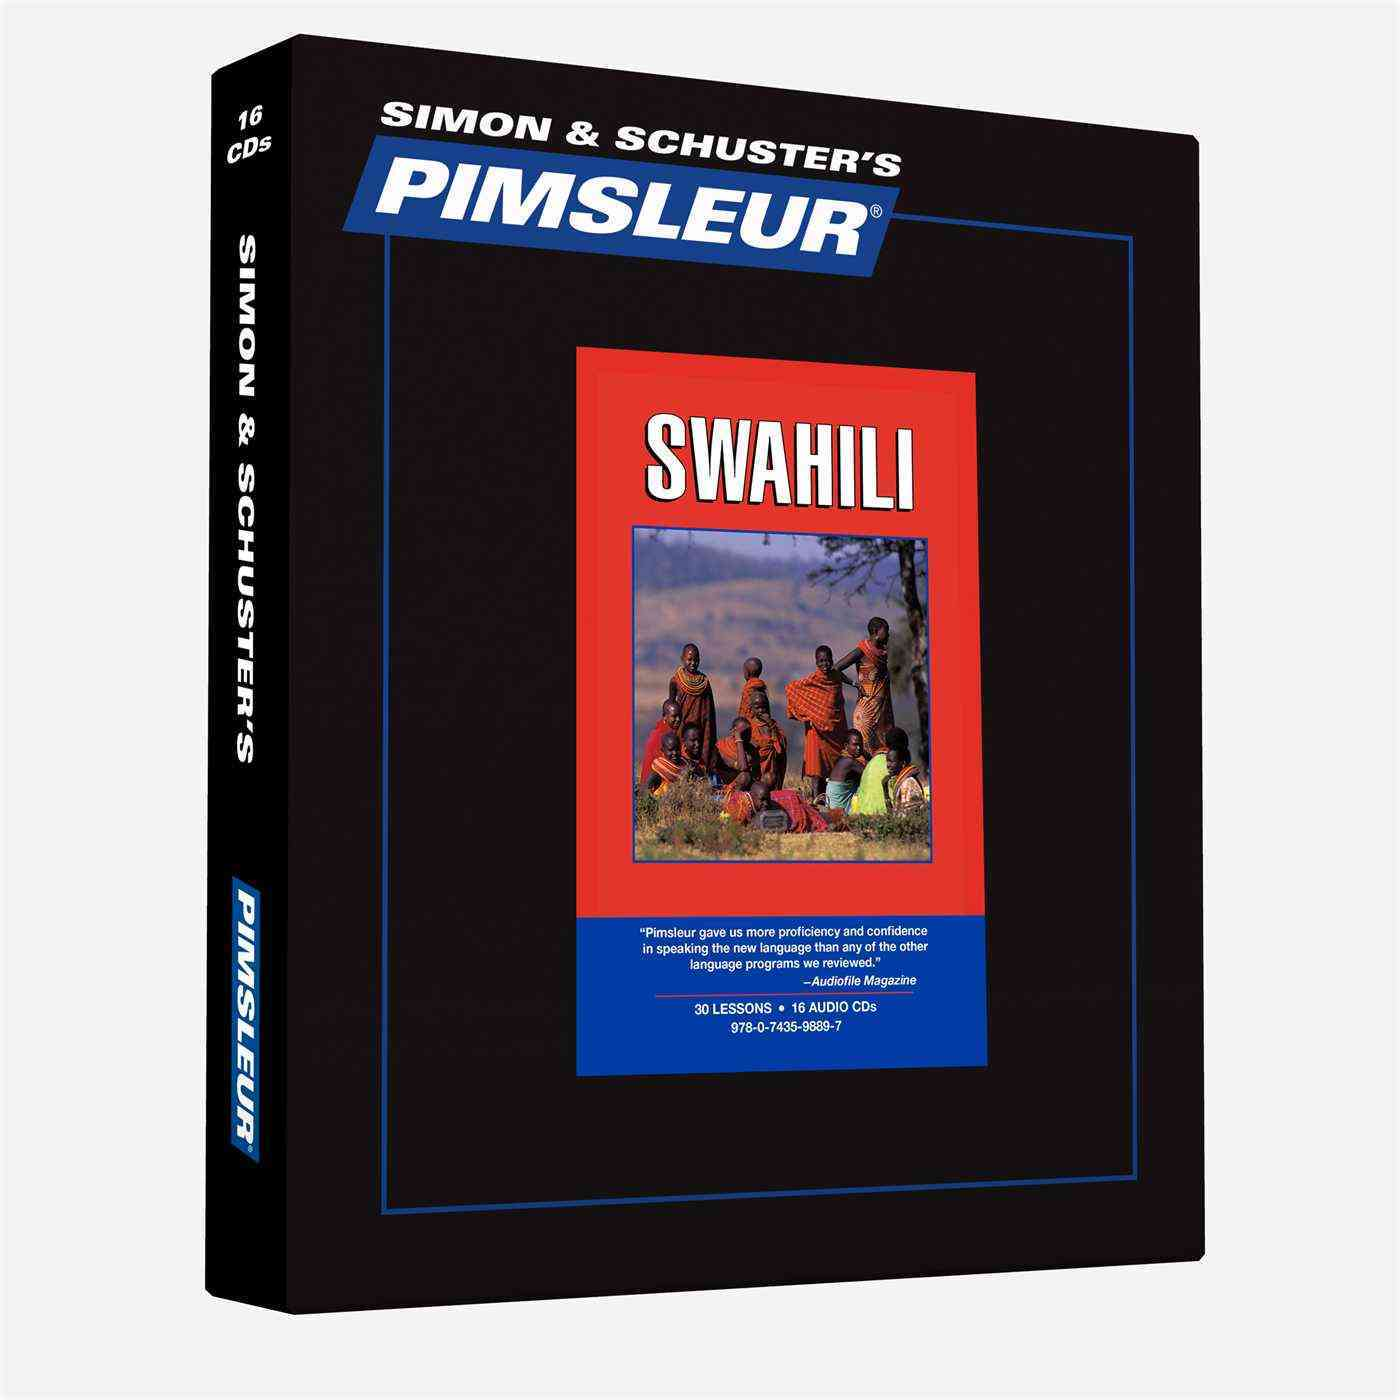 Pimsleur Swahili: 30 Lessons